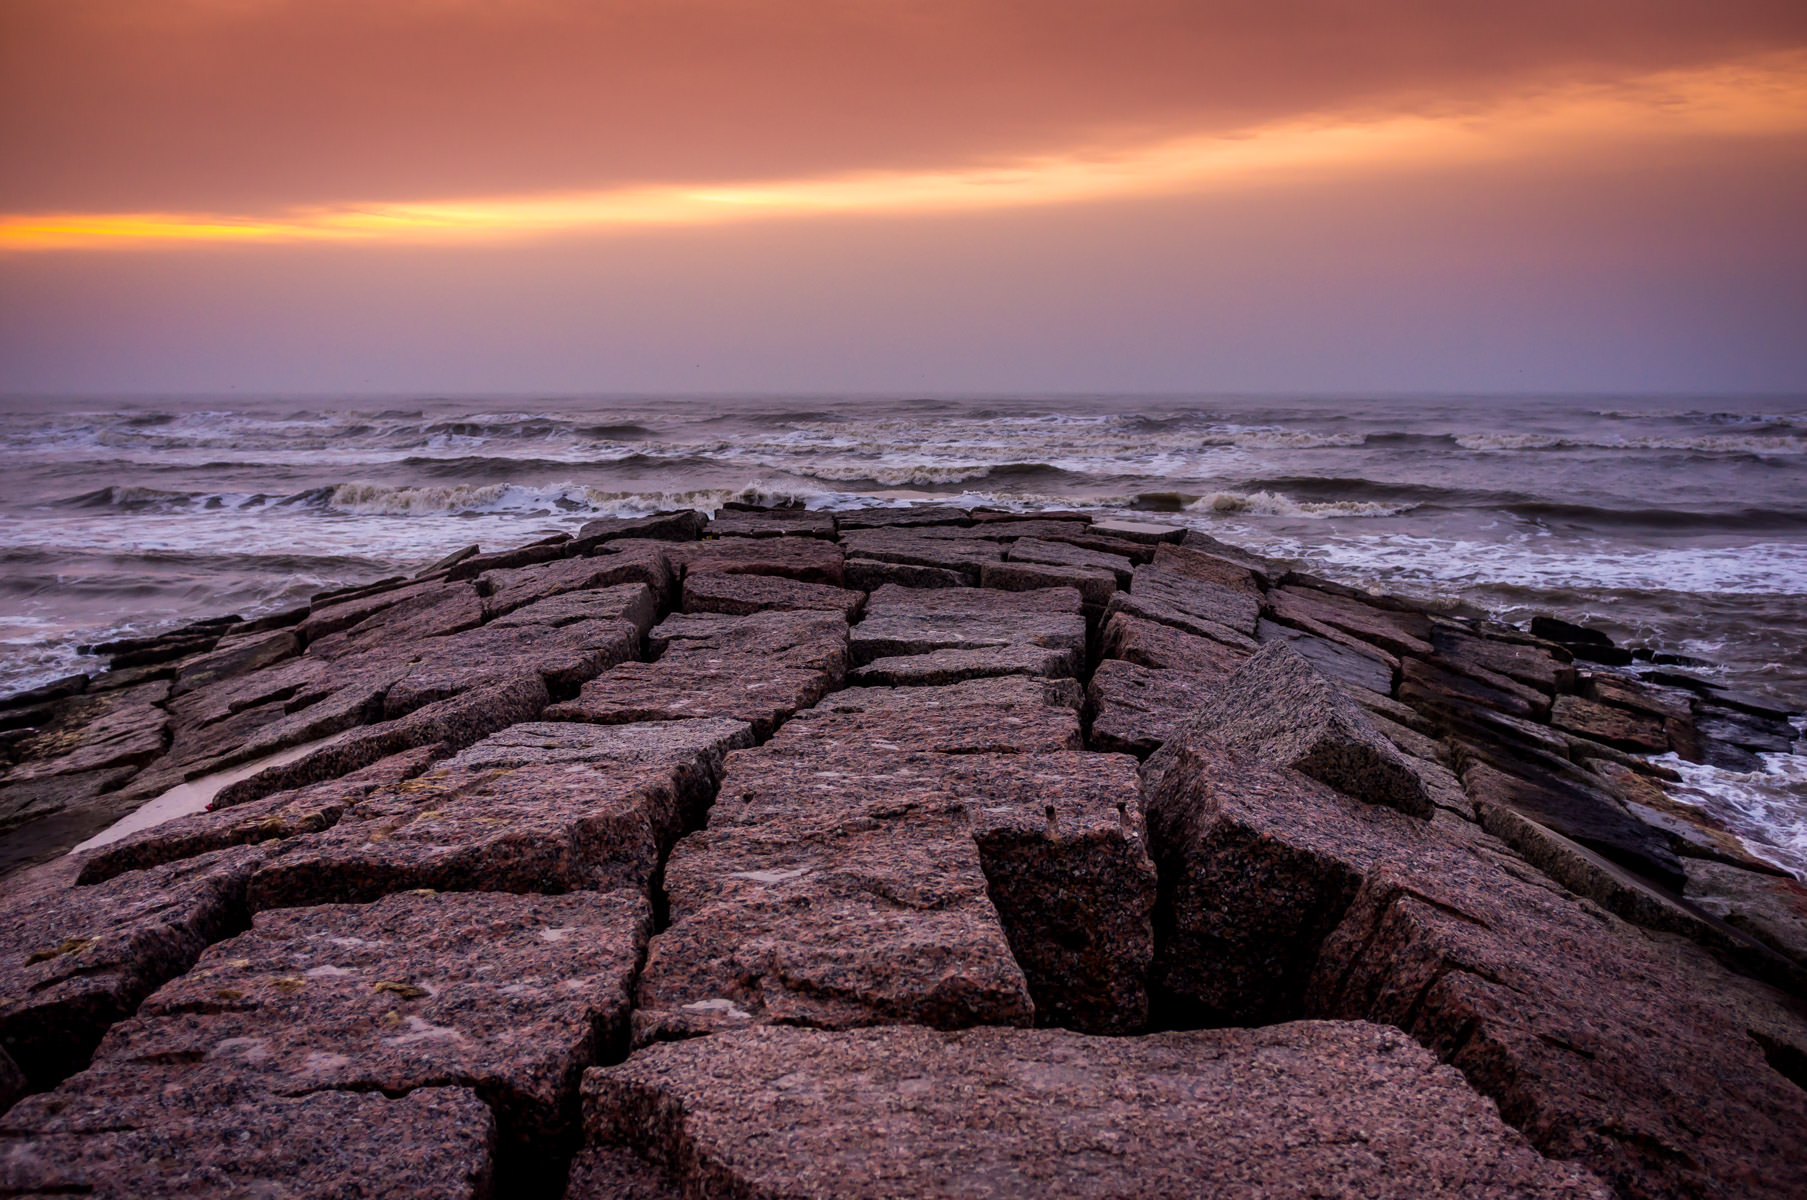 Texas pink granite forms a jetty or, more-accurately, a groyne, jutting out into the early-morning sun-painted Gulf of Mexico from Galveston Island, Texas.